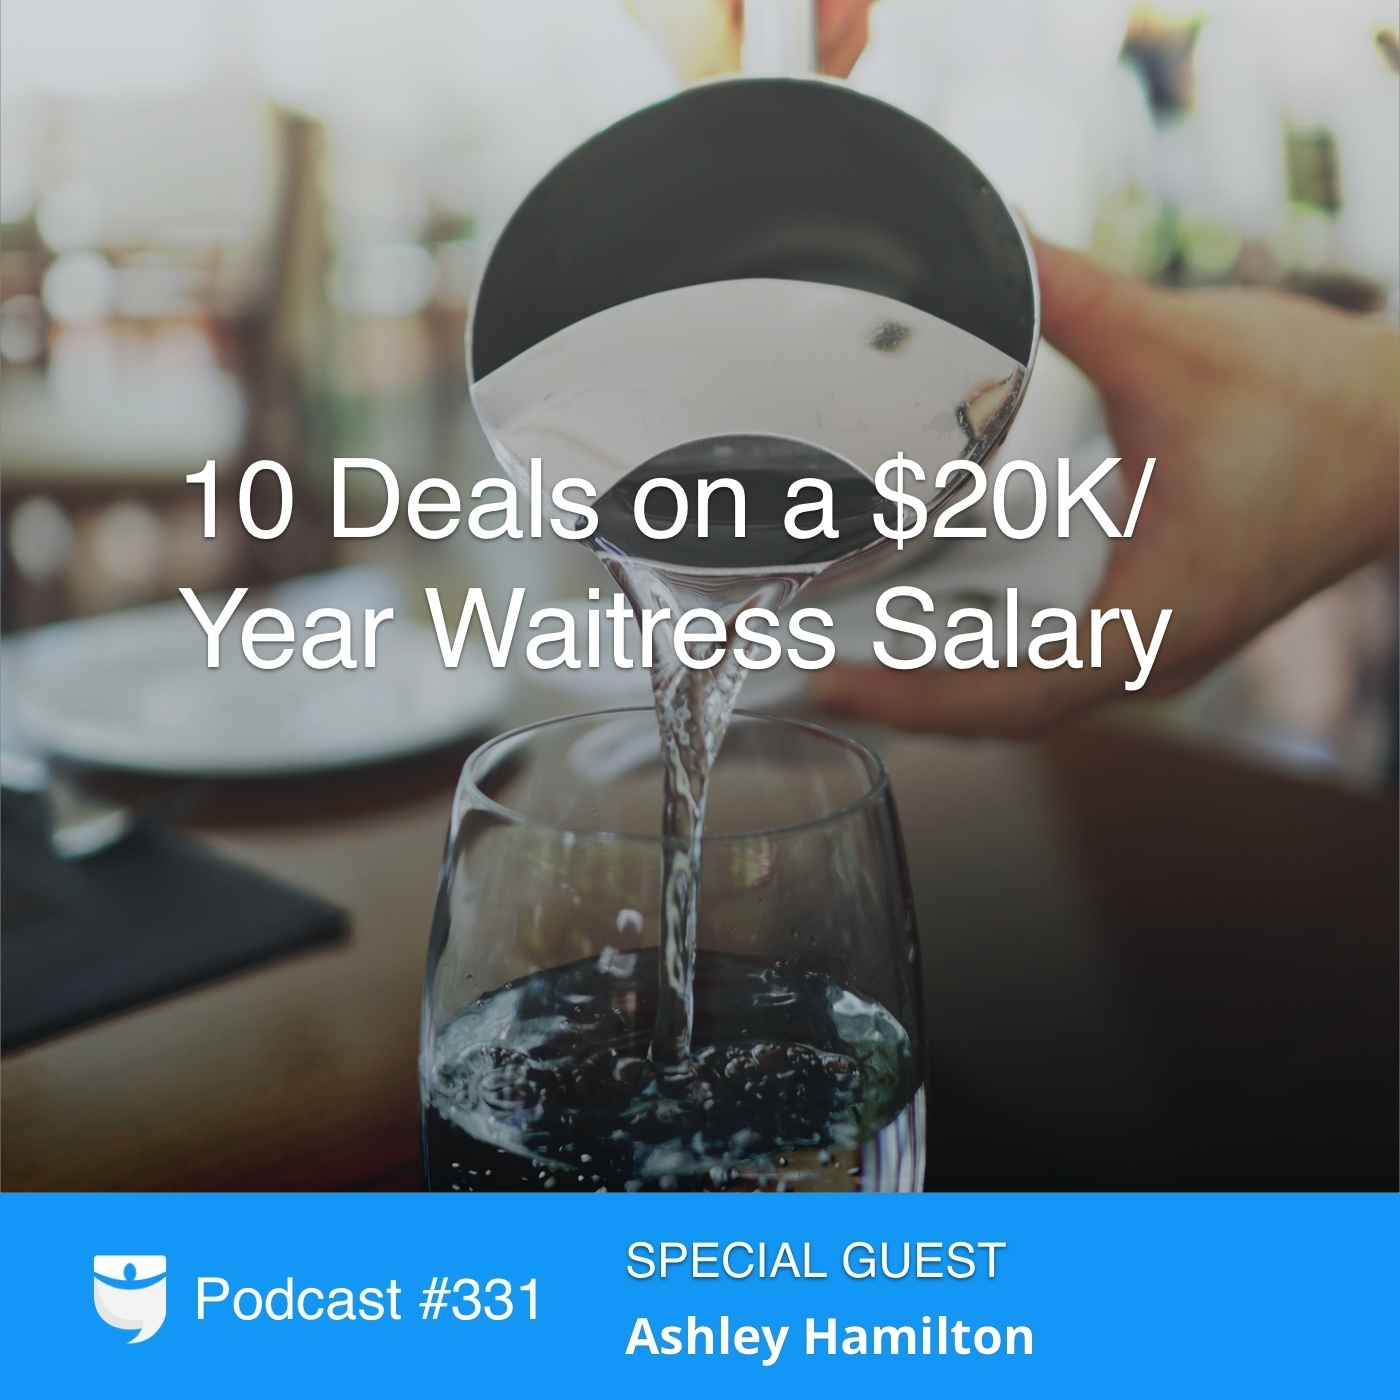 #331: 10 Deals on a $20K Waitress Salary With Ashley Hamilton